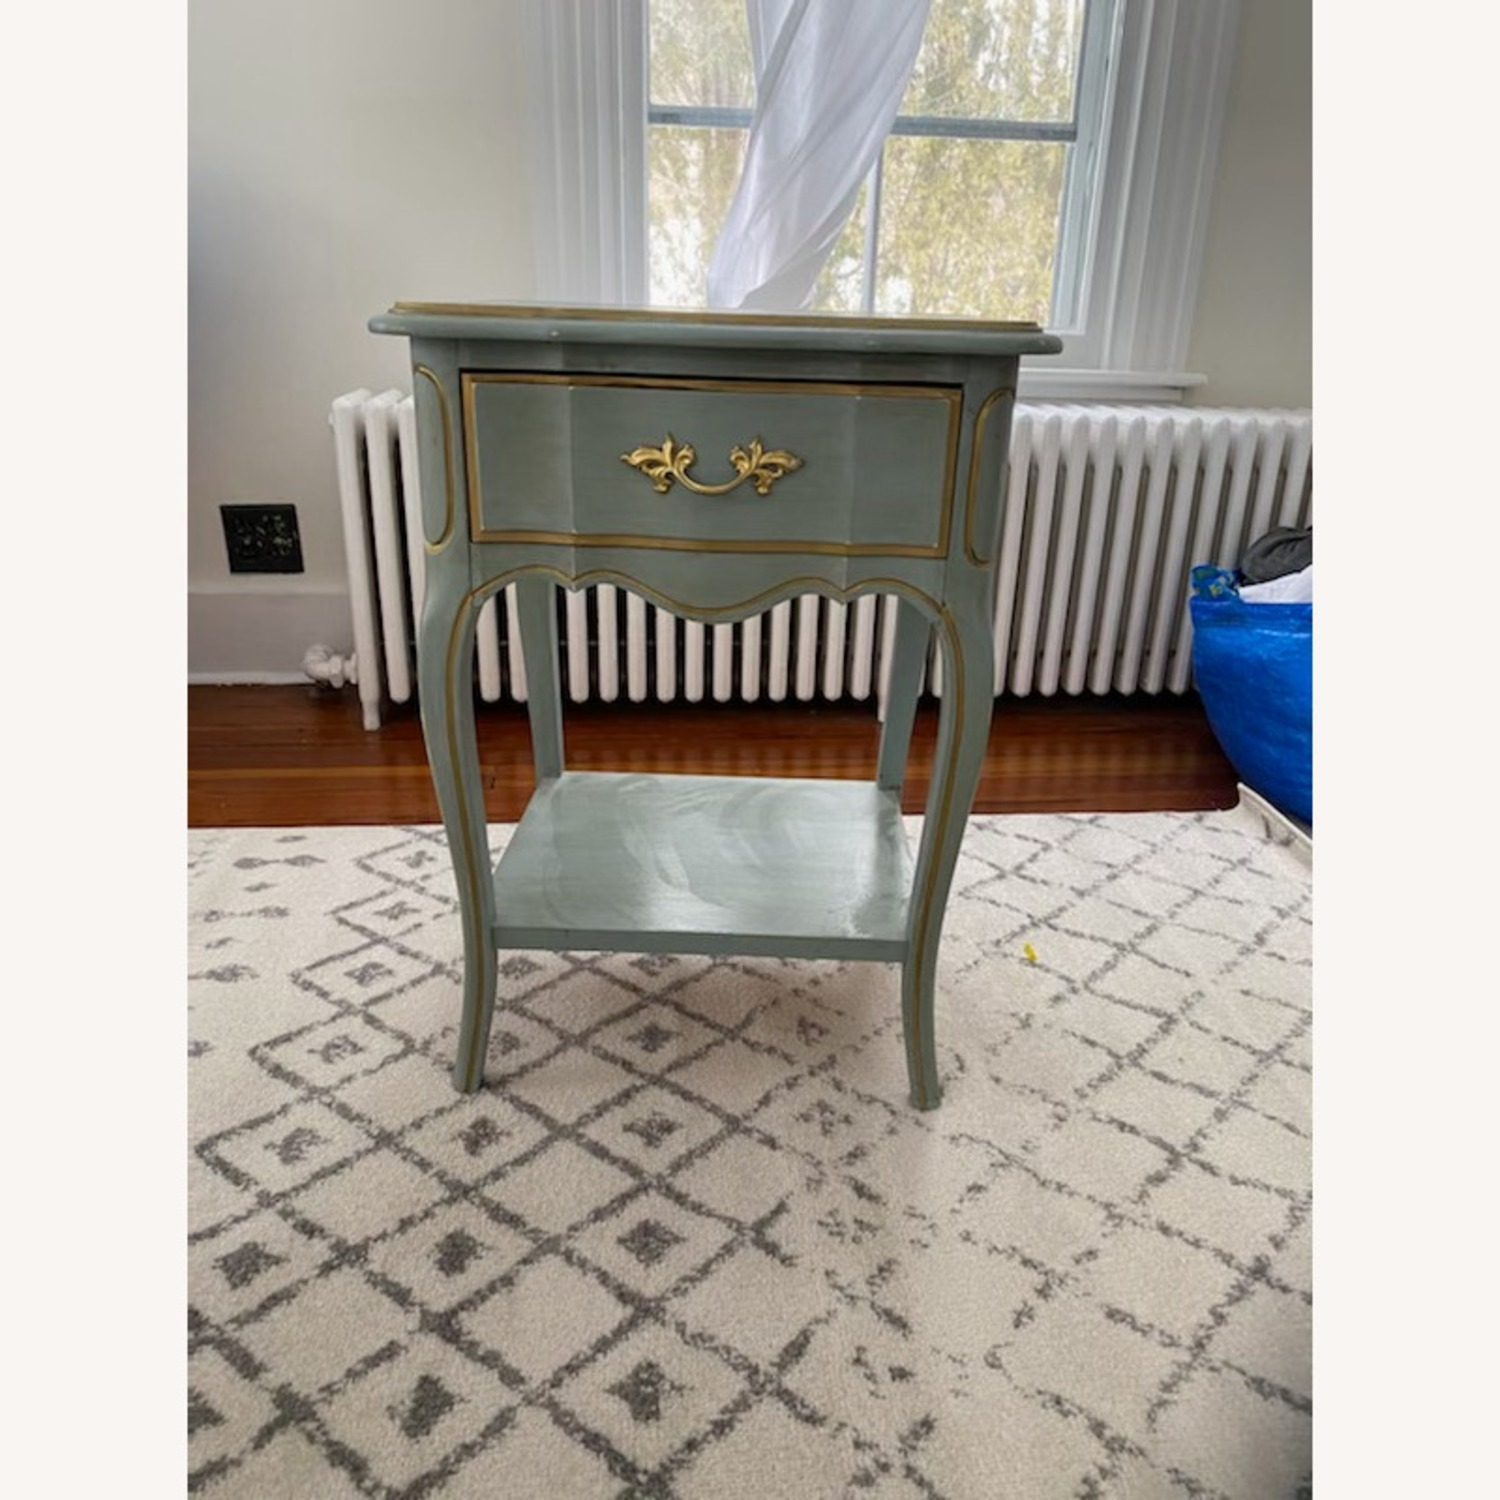 Vintage Blue Nightstand/table with Gold Accents - image-1